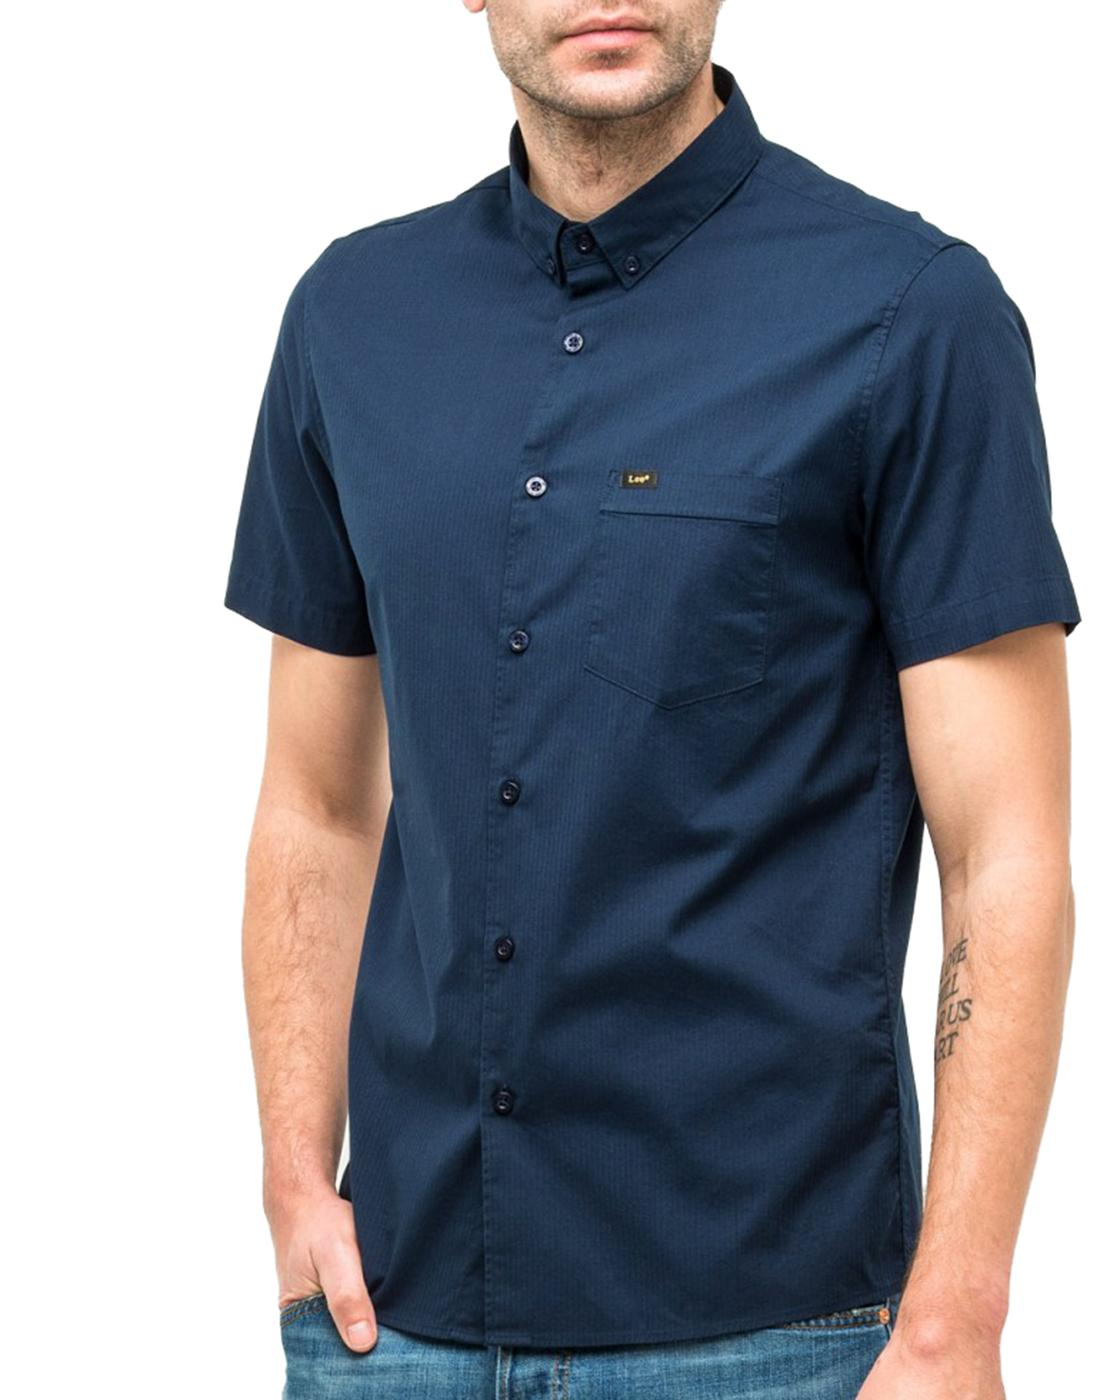 LEE JEANS Men's Mod Slim Smart Button Down Shirt